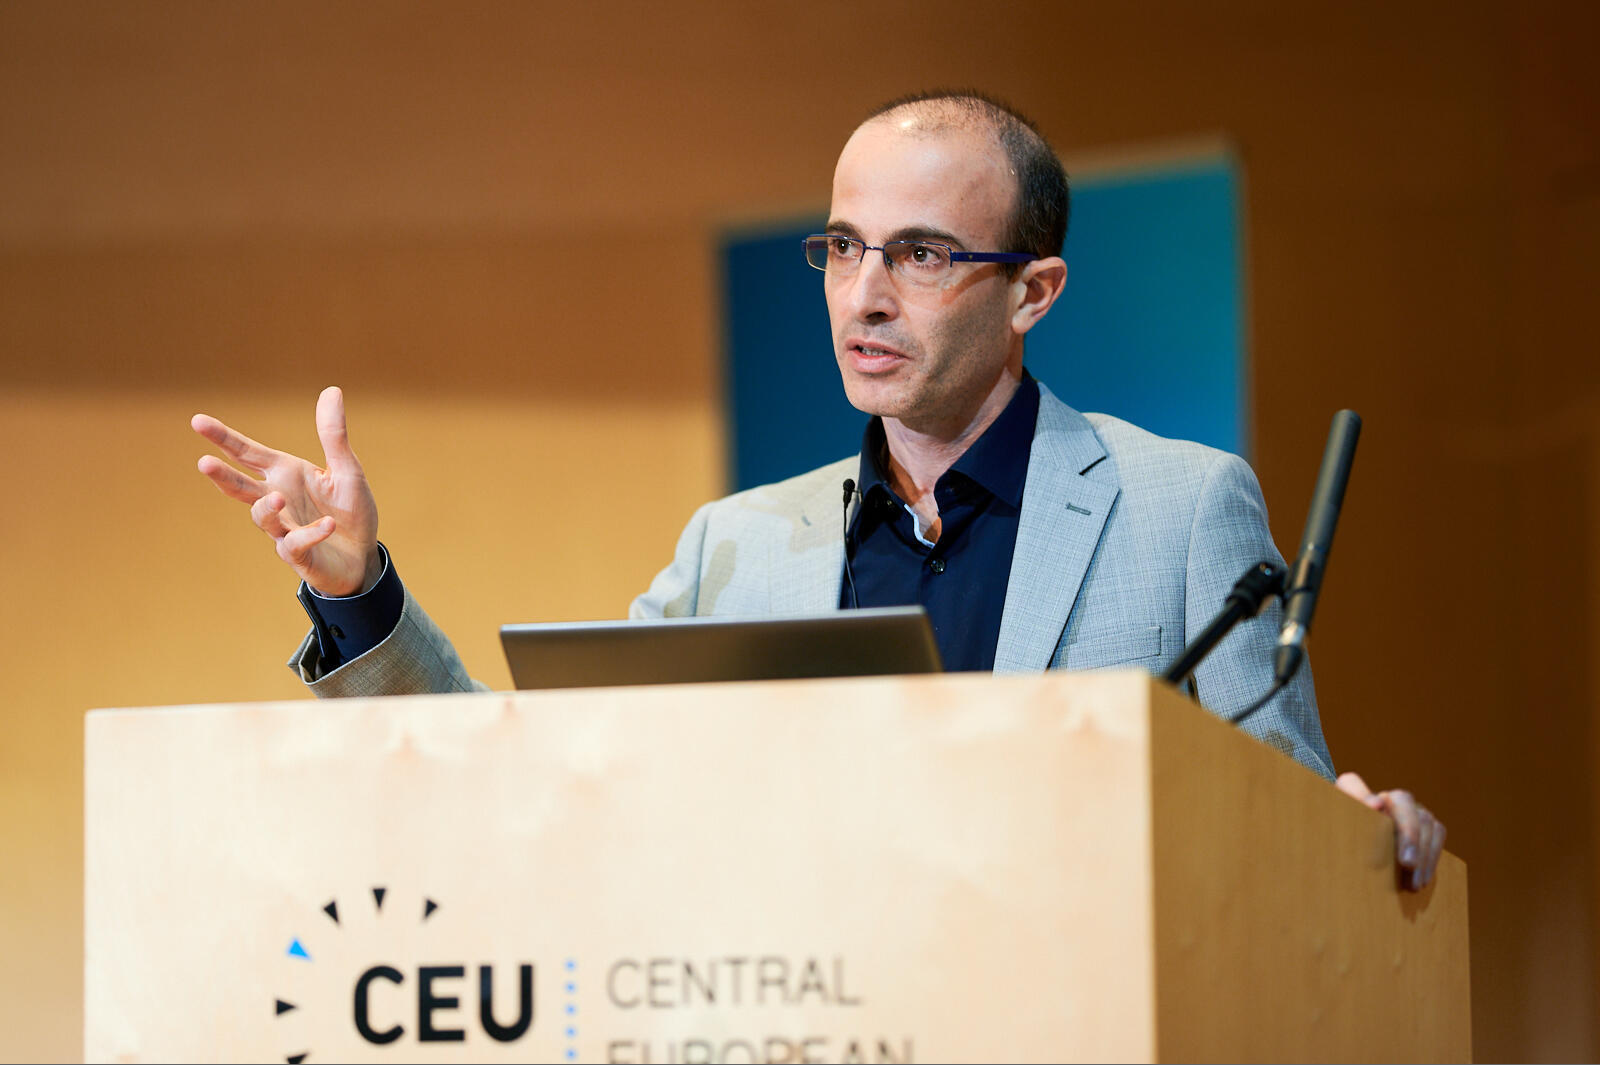 """Yuval Noah Harari, author of Sapiens and Homo Deus, here giving a lecture at the Central European University in Budapest, titled """"The Bright Side of Nationalism,"""" 17 May 2019."""